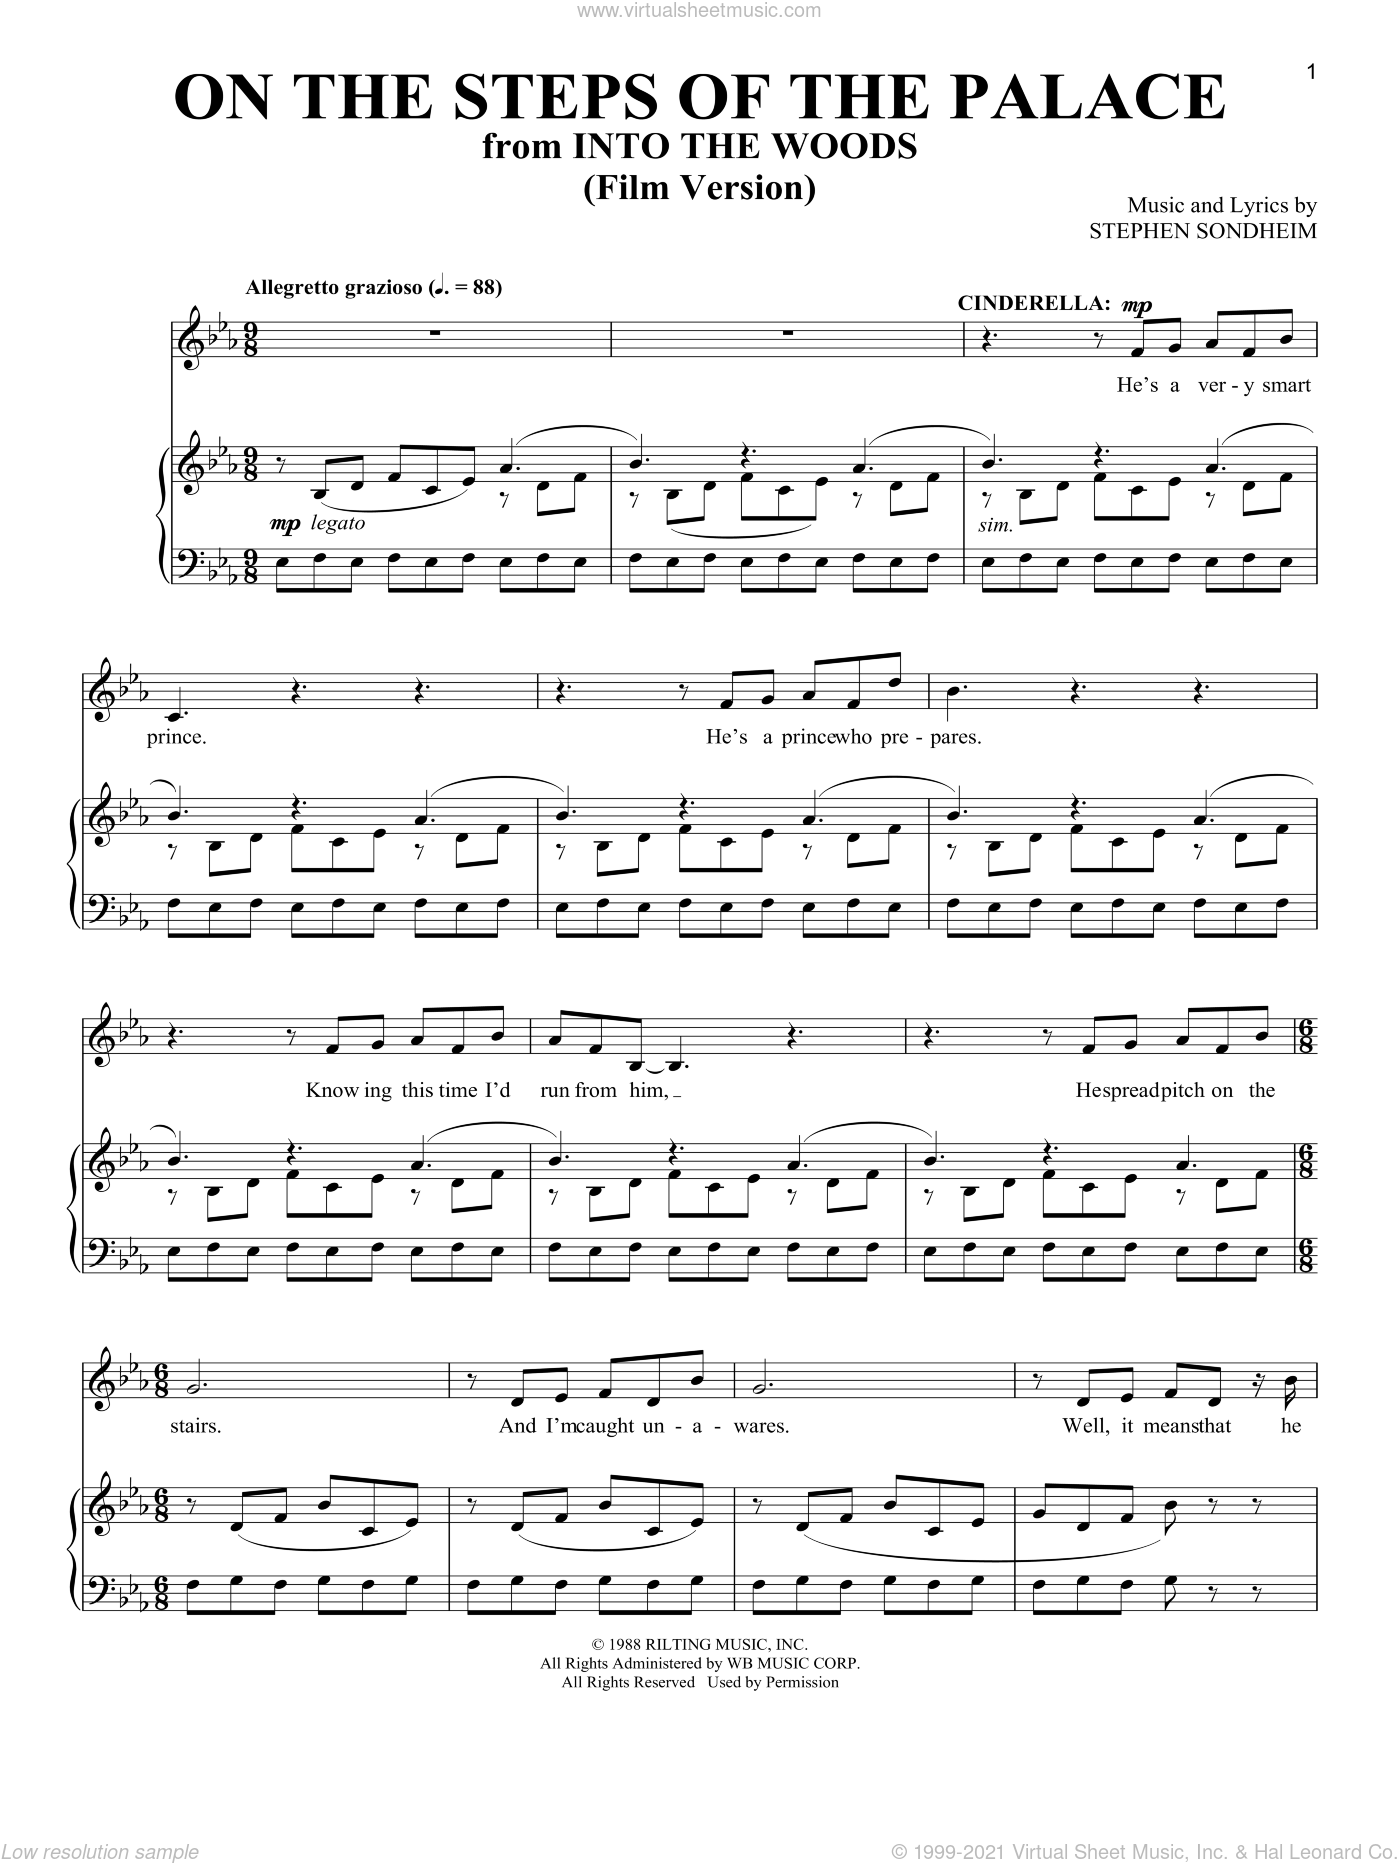 On The Steps Of The Palace (Film Version) sheet music for voice and piano by Stephen Sondheim, intermediate skill level